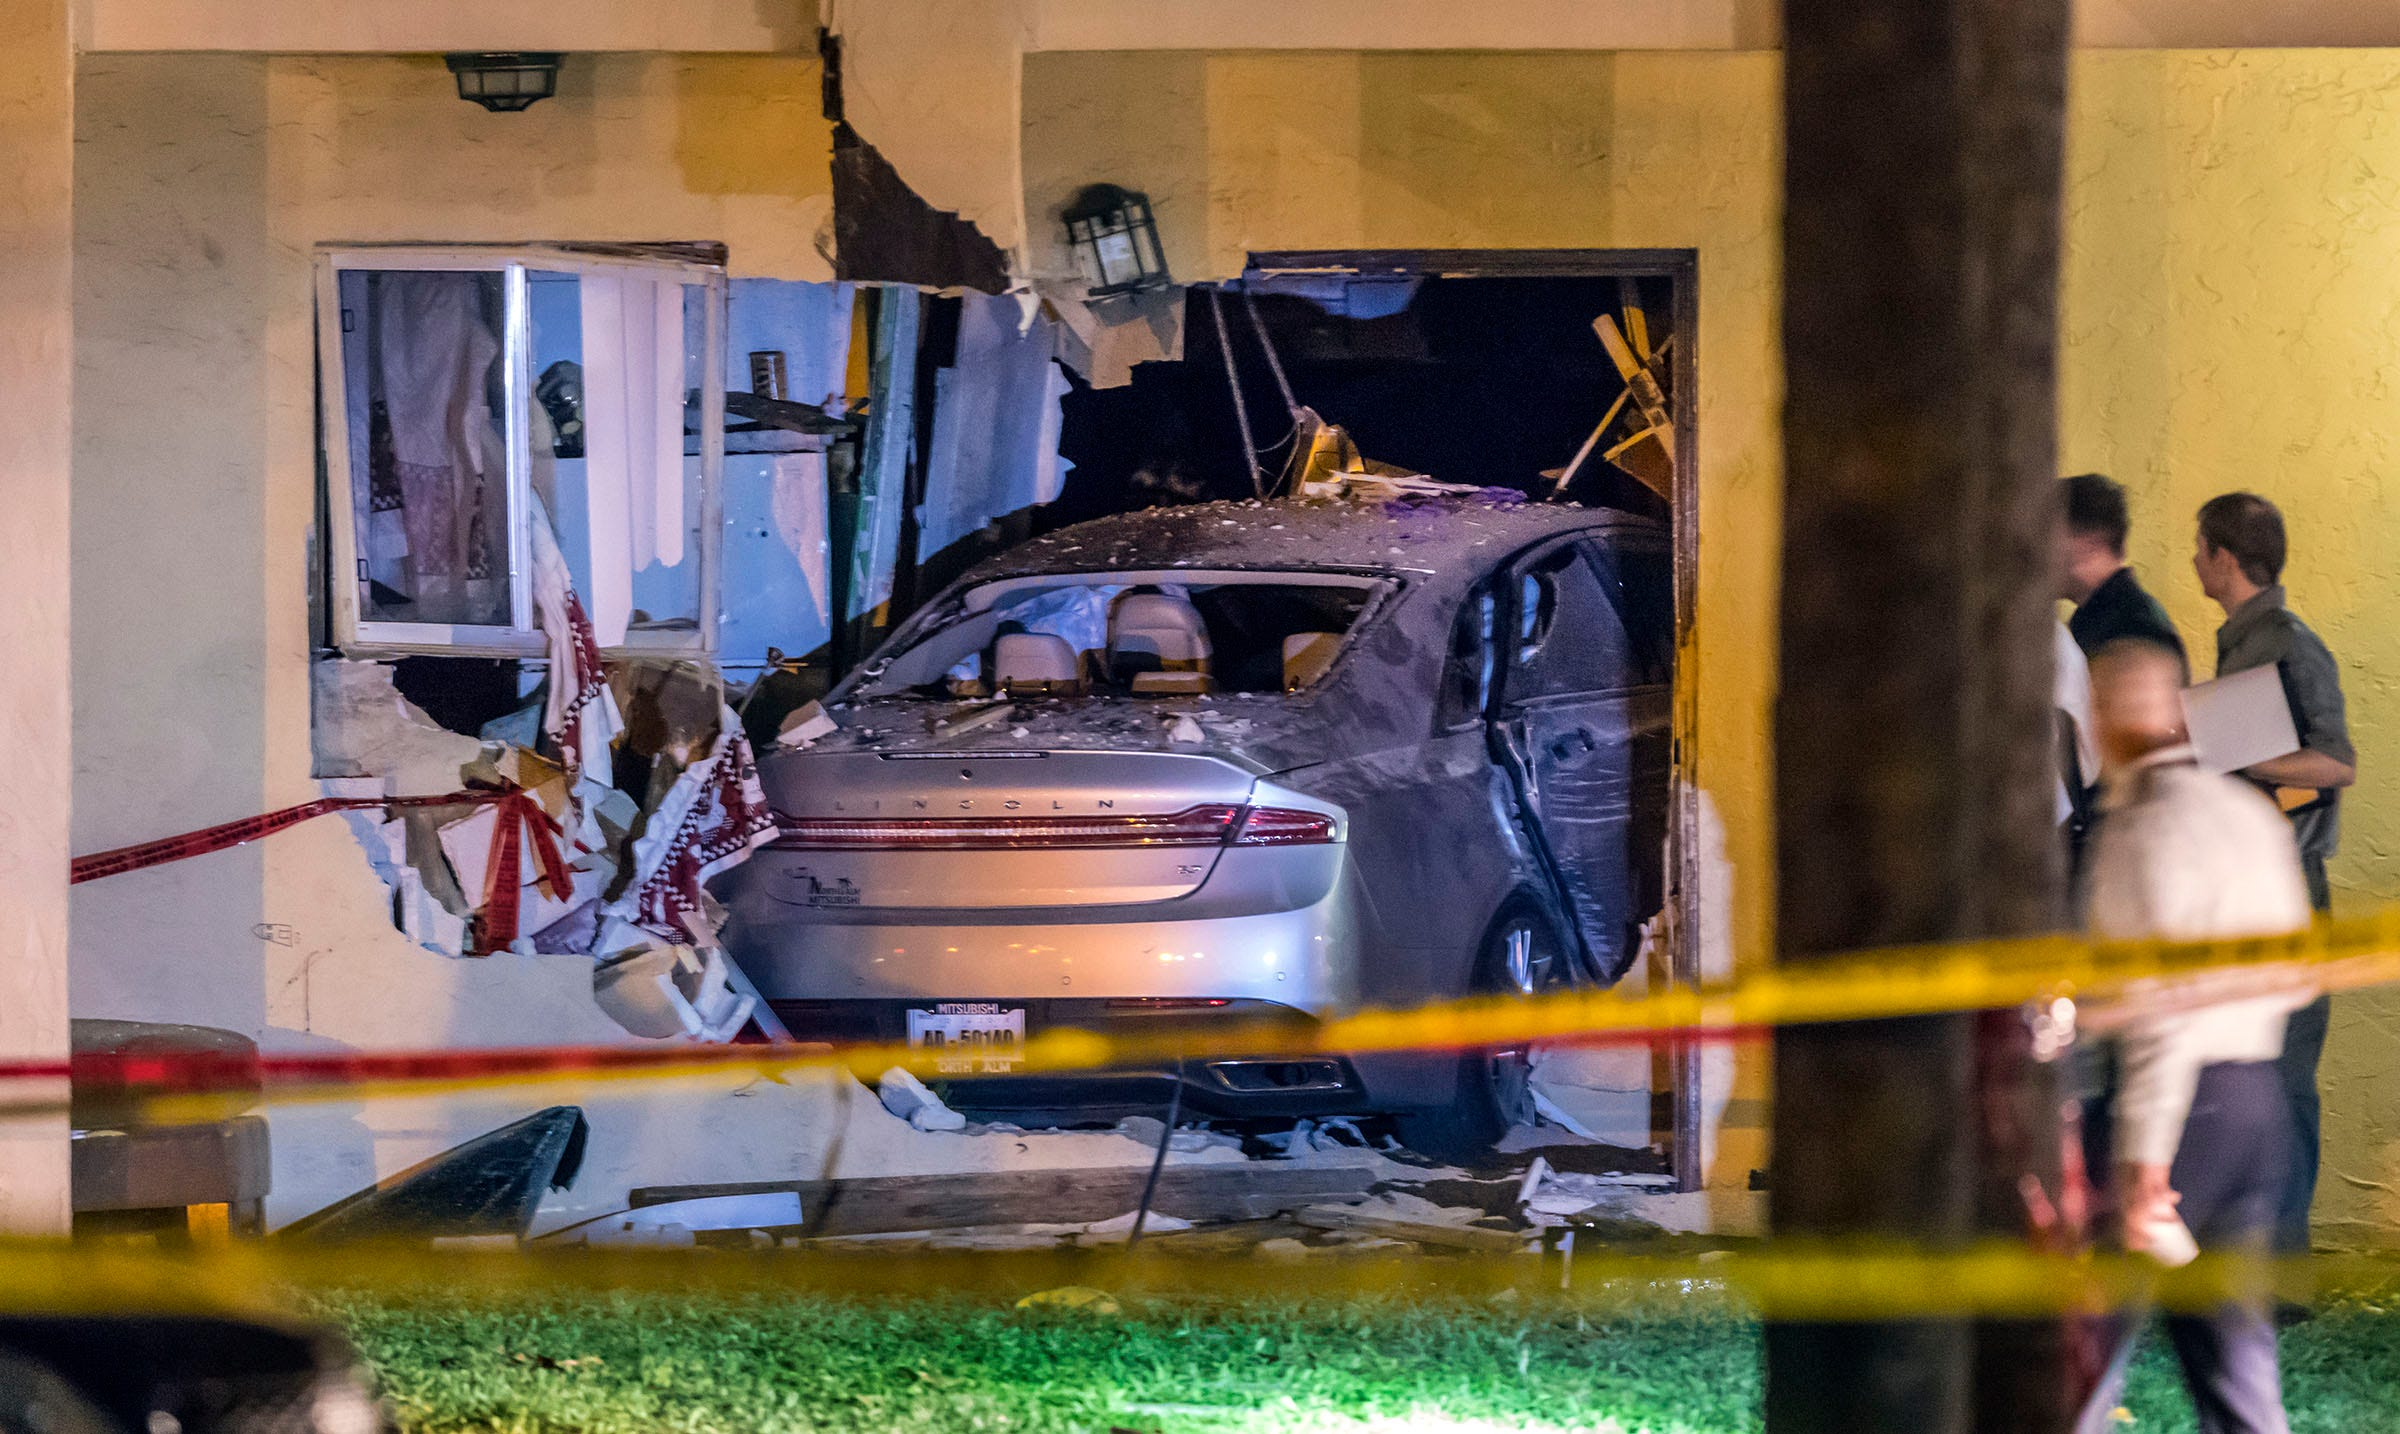 Deputies examine the scene where two men died after their car slammed into a home in a Greenacres-area apartment complex early on Oct. 3, 2018, following a shooting.